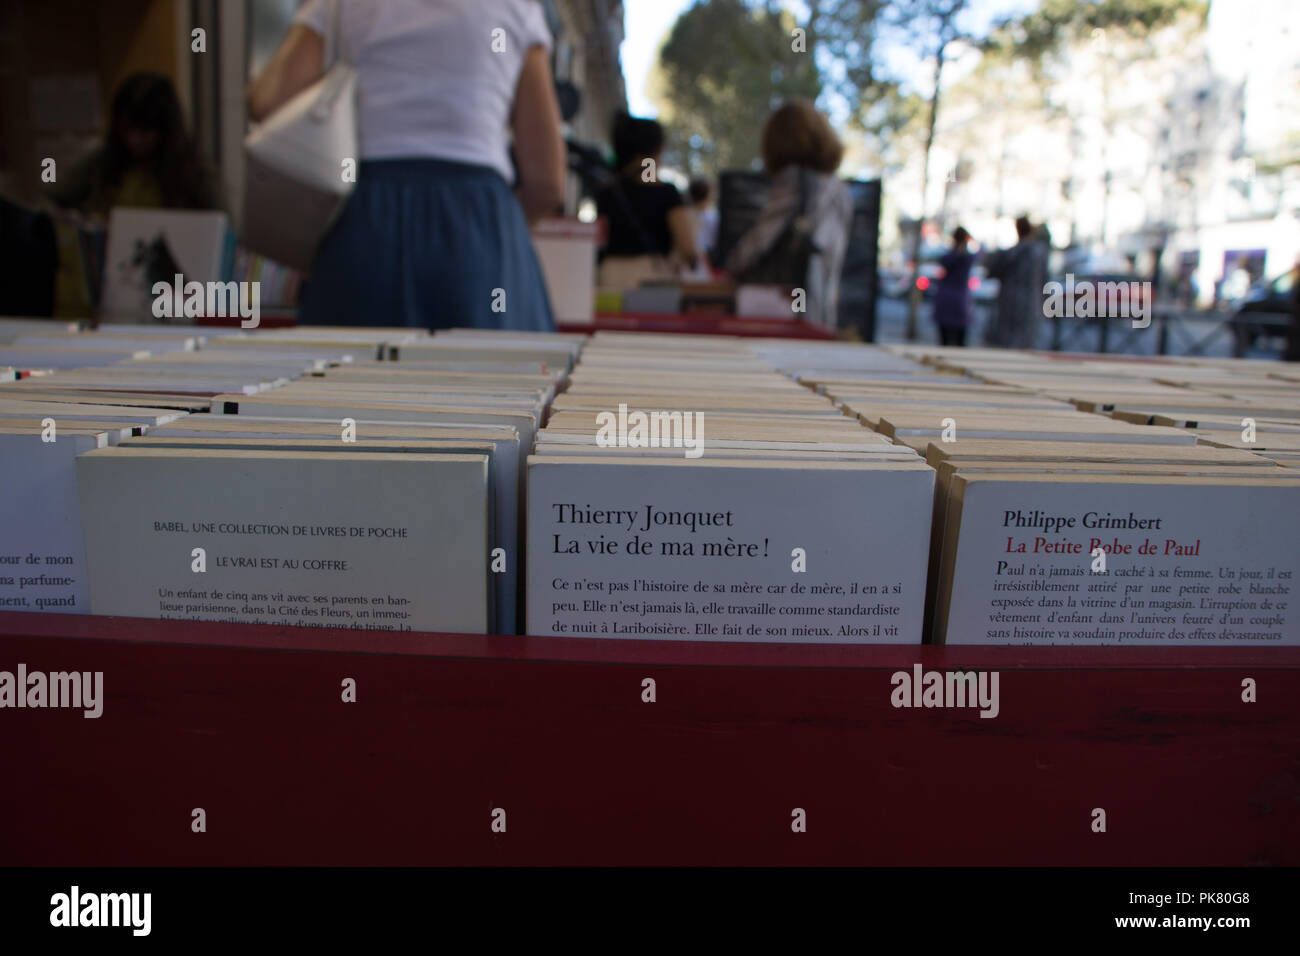 Paris, France - September 11, 2018: Rows of used French language